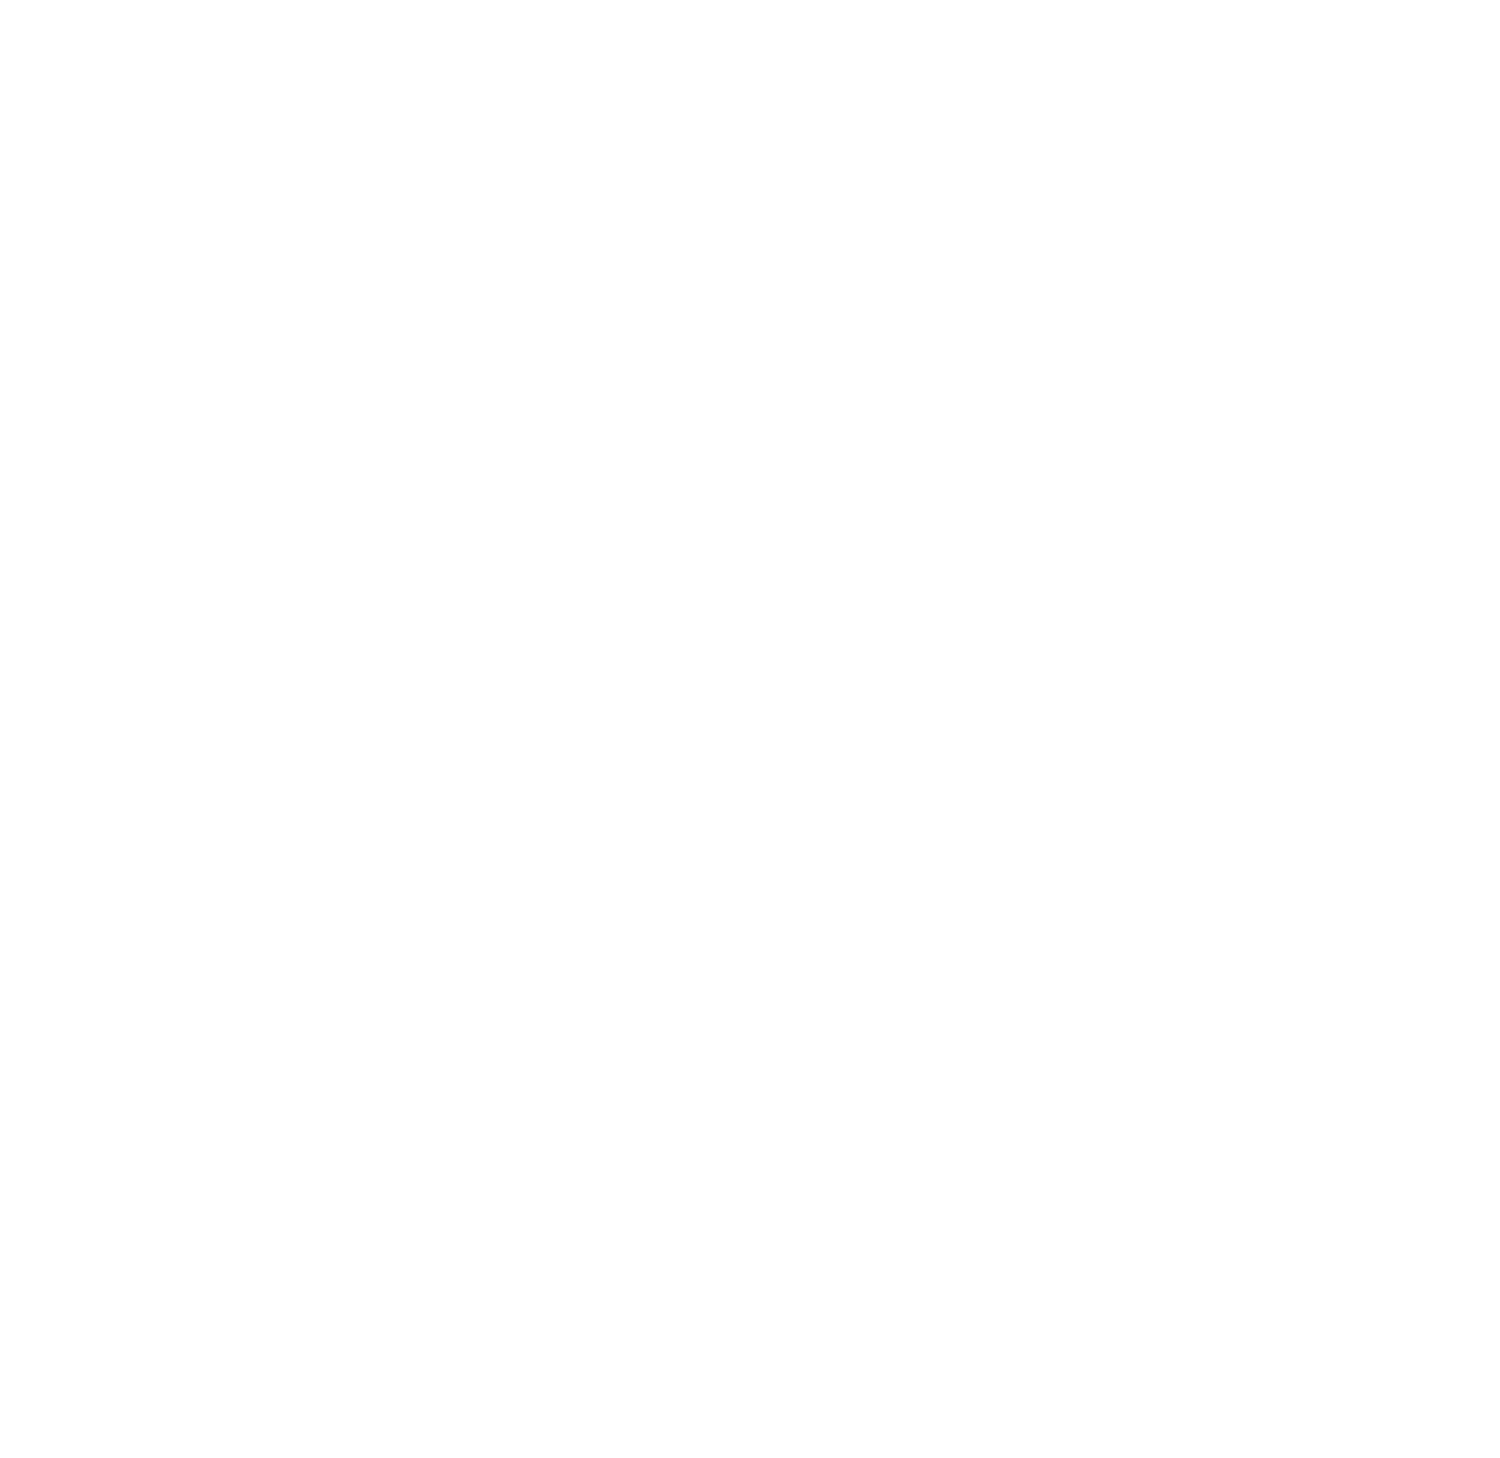 Andean Center for Latin American Studies